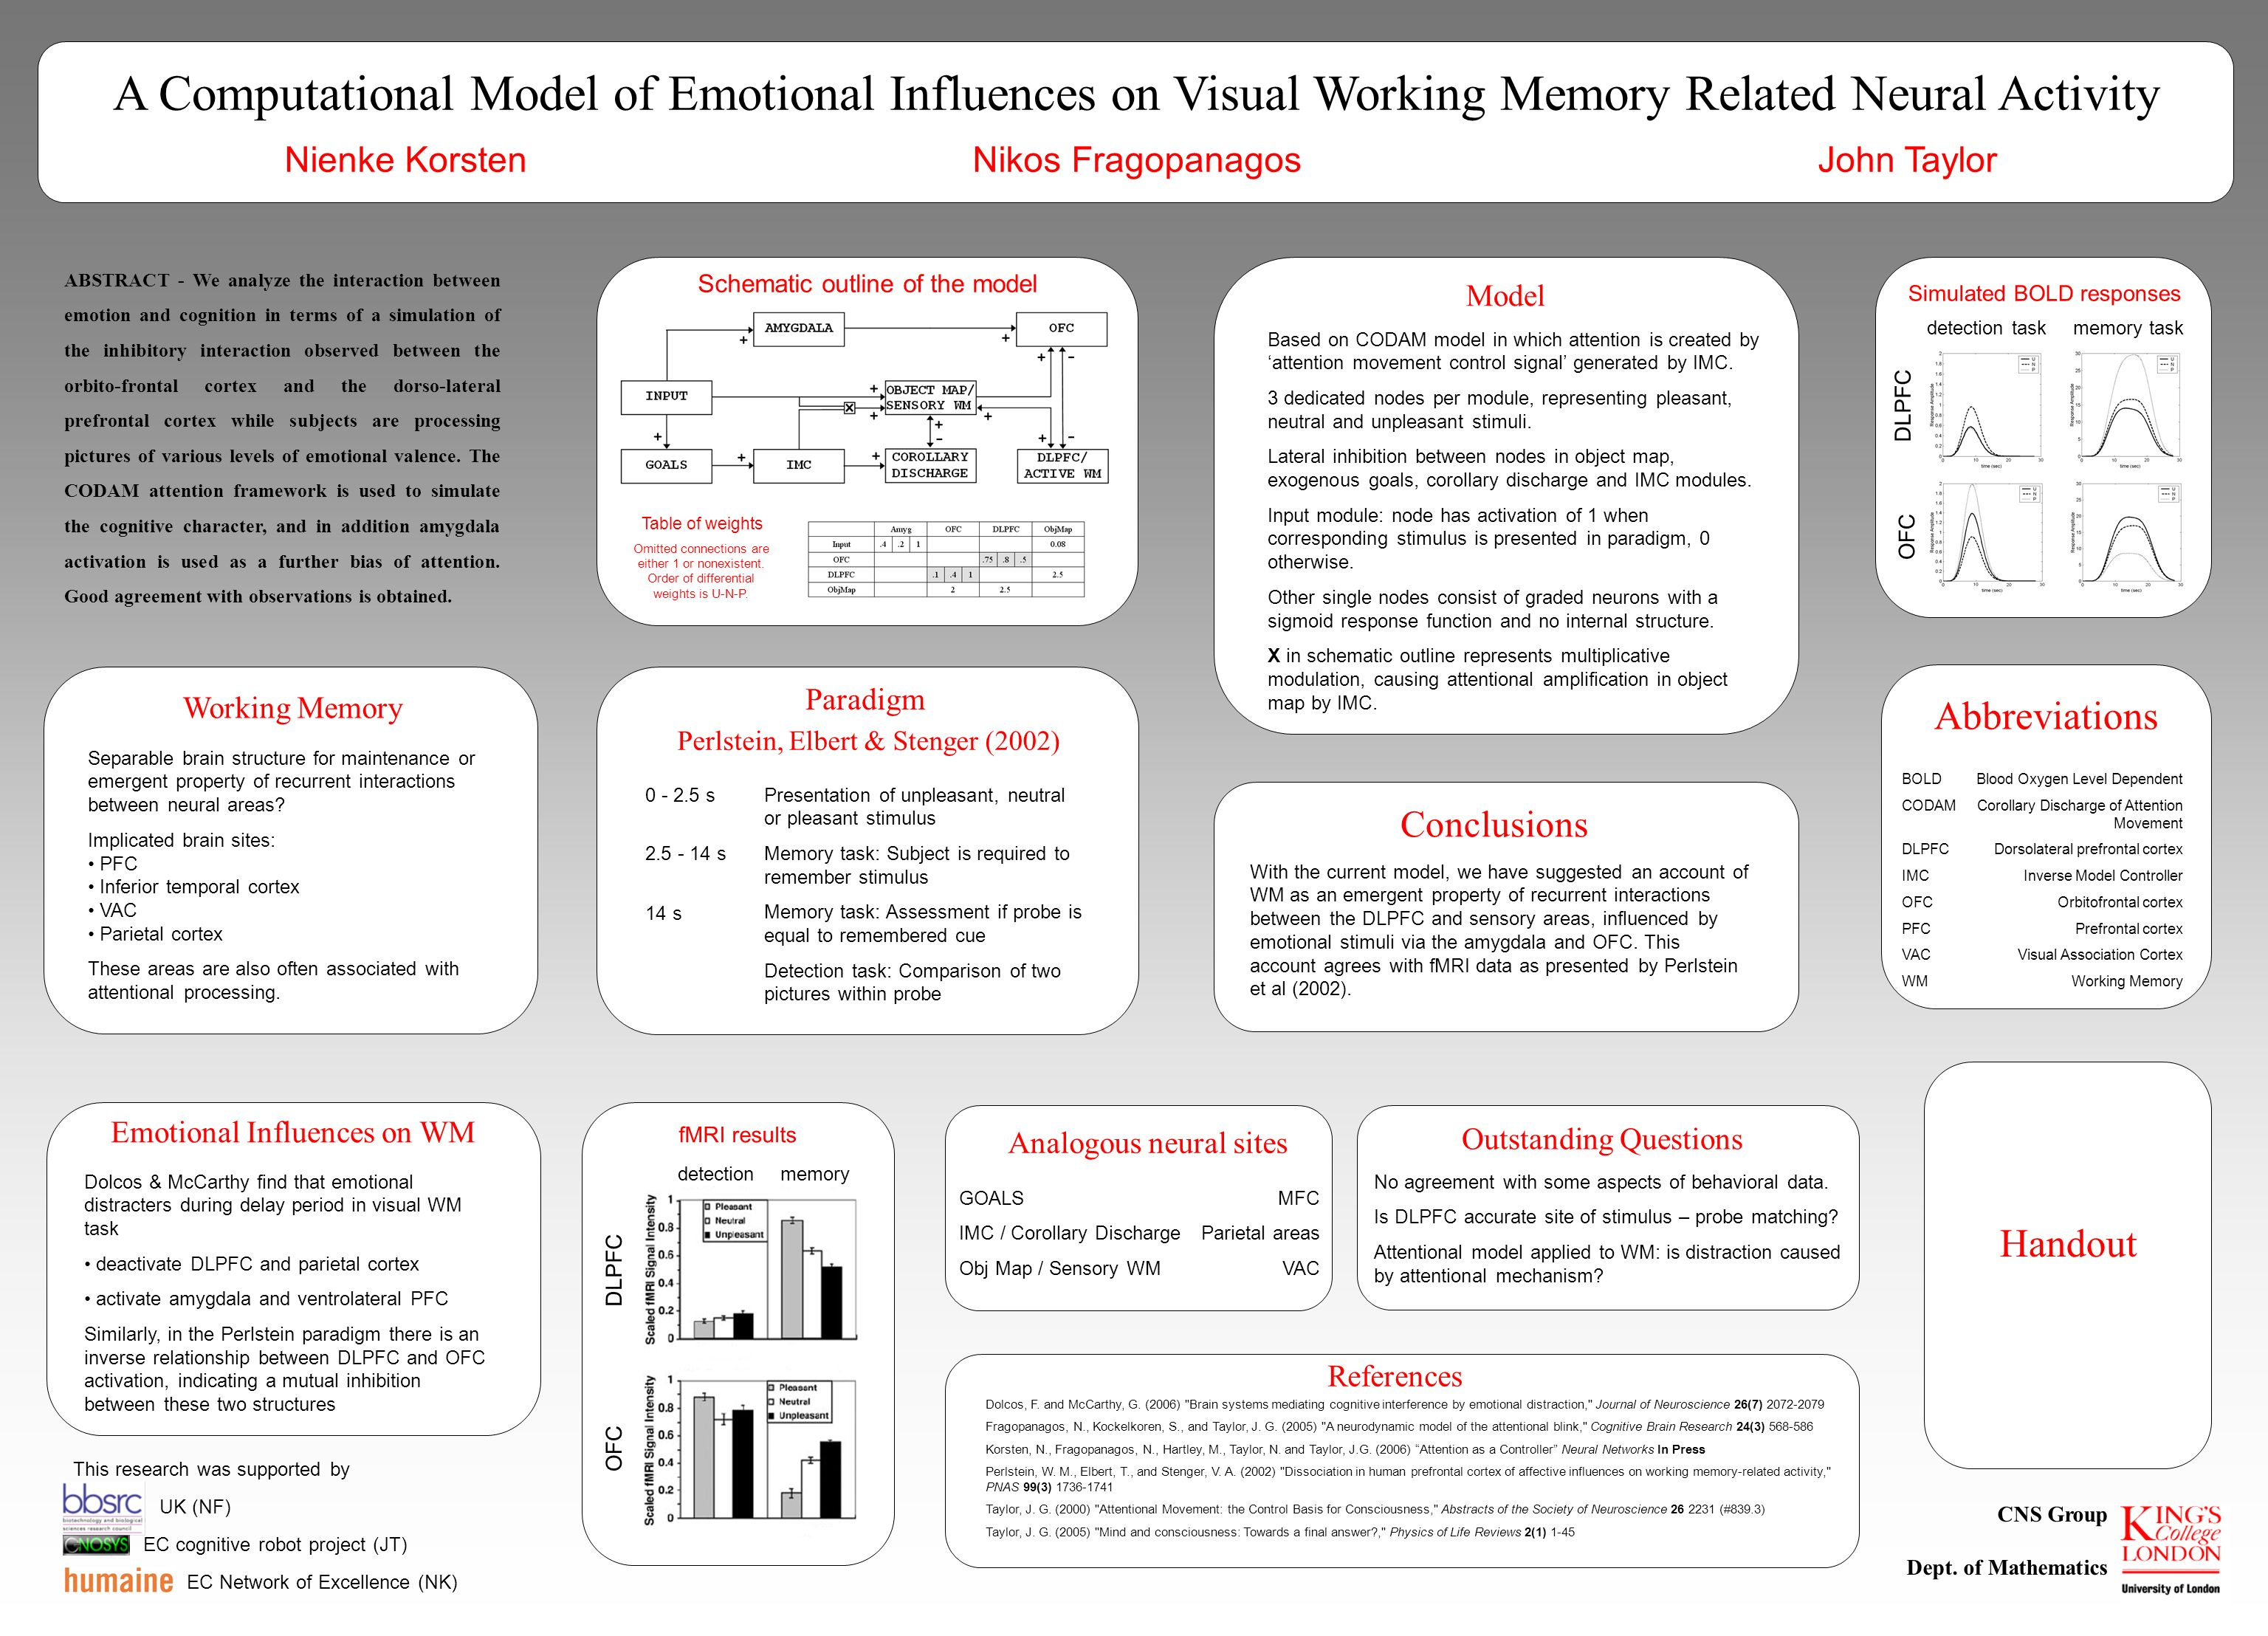 A Computational Model of Emotional Influences on Visual Working Memory Related Neural Activity Nienke Korsten Nikos Fragopanagos John Taylor OFC DLPFC detection taskmemory task Simulated BOLD responses OFC DLPFC detectionmemory fMRI results Handout Working Memory Separable brain structure for maintenance or emergent property of recurrent interactions between neural areas.